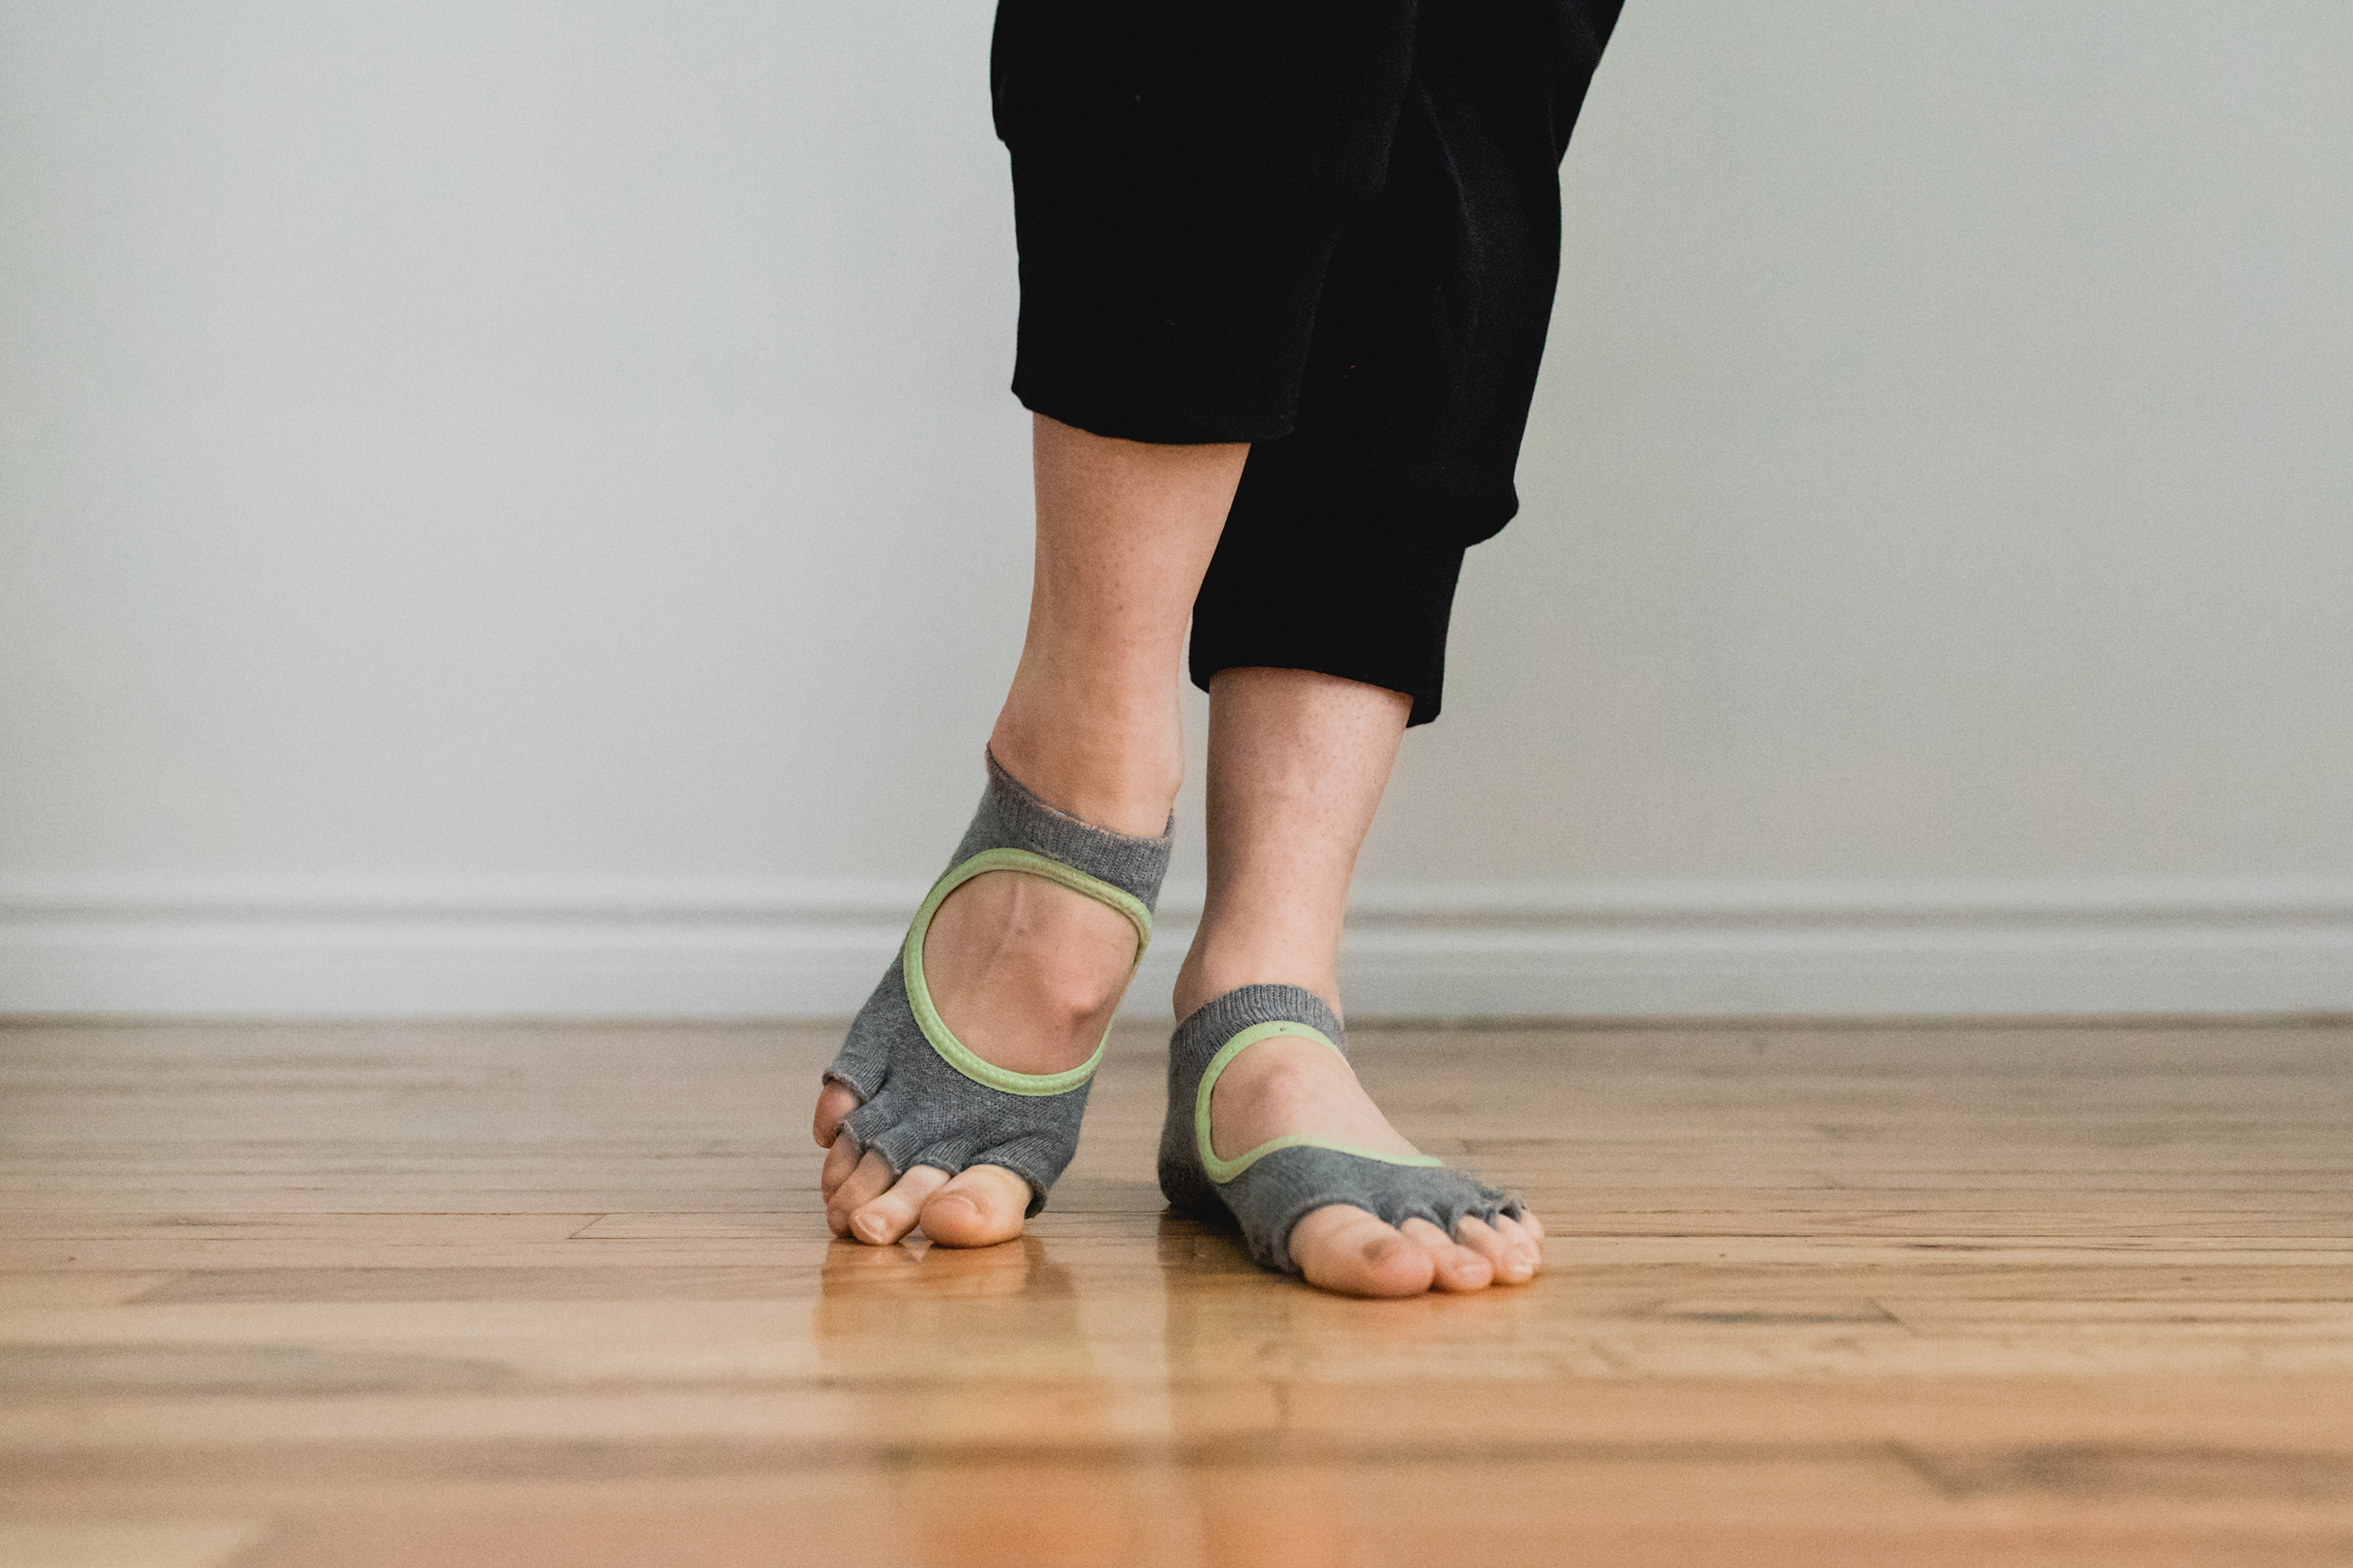 Bella Half Toe Grip Socks give the feeling of being barefoot